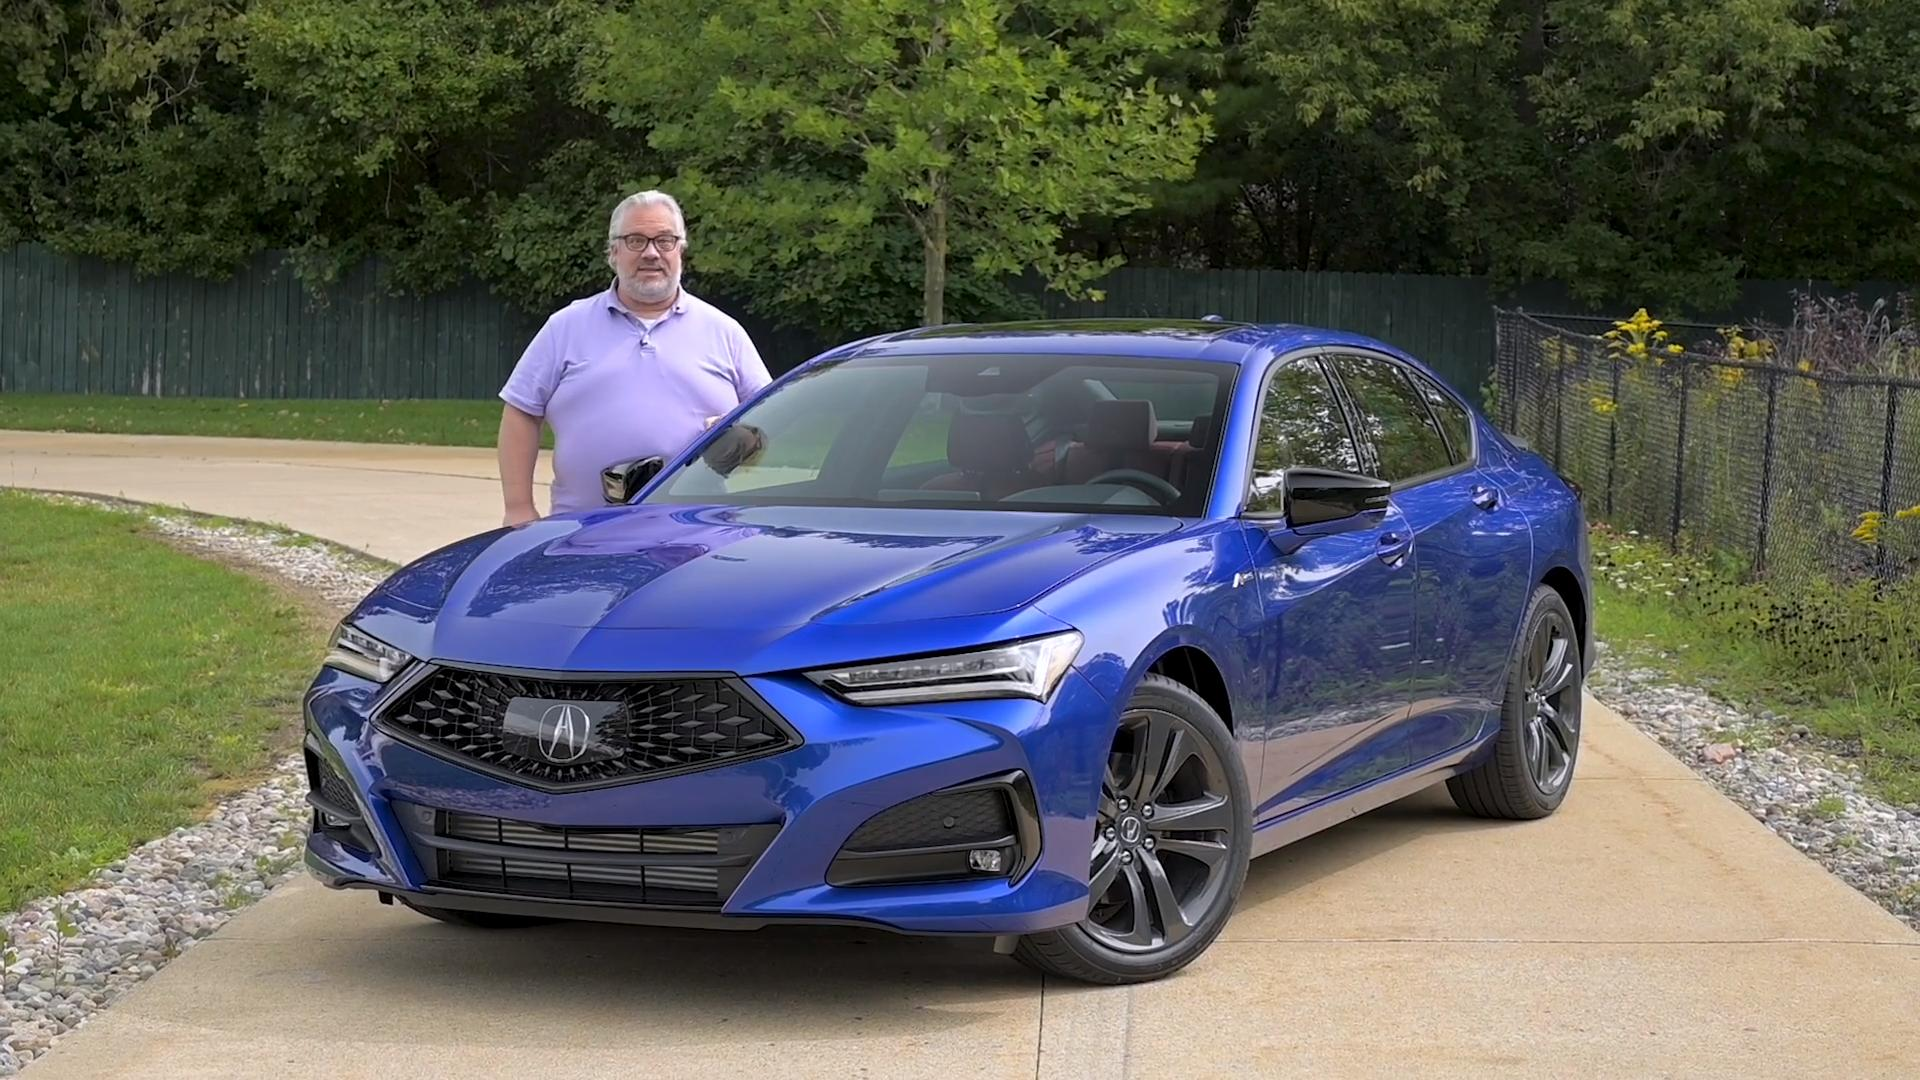 Video: 2021 Acura TLX: First Drive — Cars.com